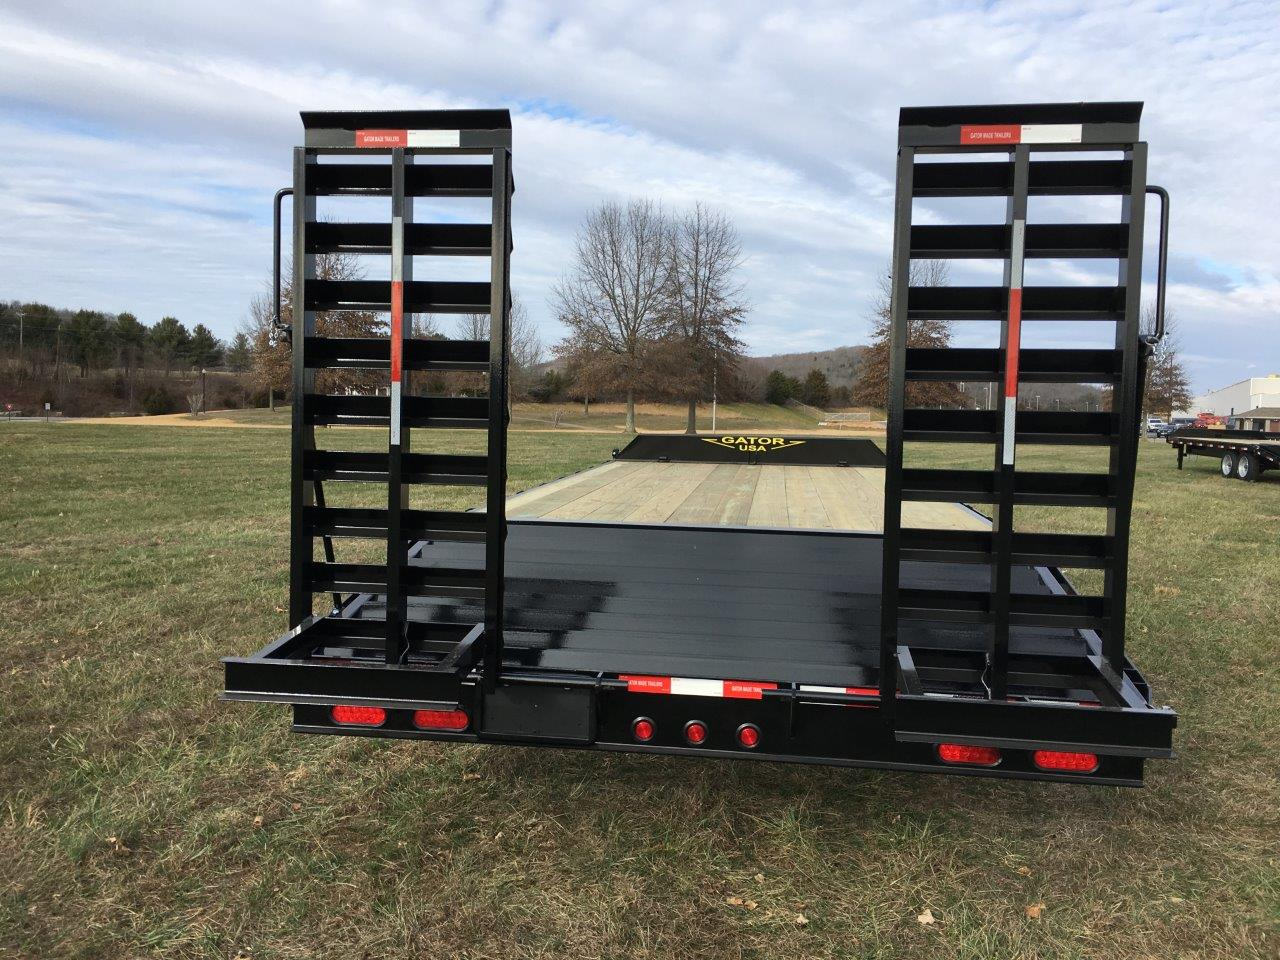 7 Way 16 Utility Trailer Wiring Harness also Kearney Trailer Wiring Diagram furthermore How To Wire Trailer Lights Wiring Instructions moreover Sure Trac Dump Trailer Wiring Diagram also Faq Wiring. on doolittle trailer wiring diagram